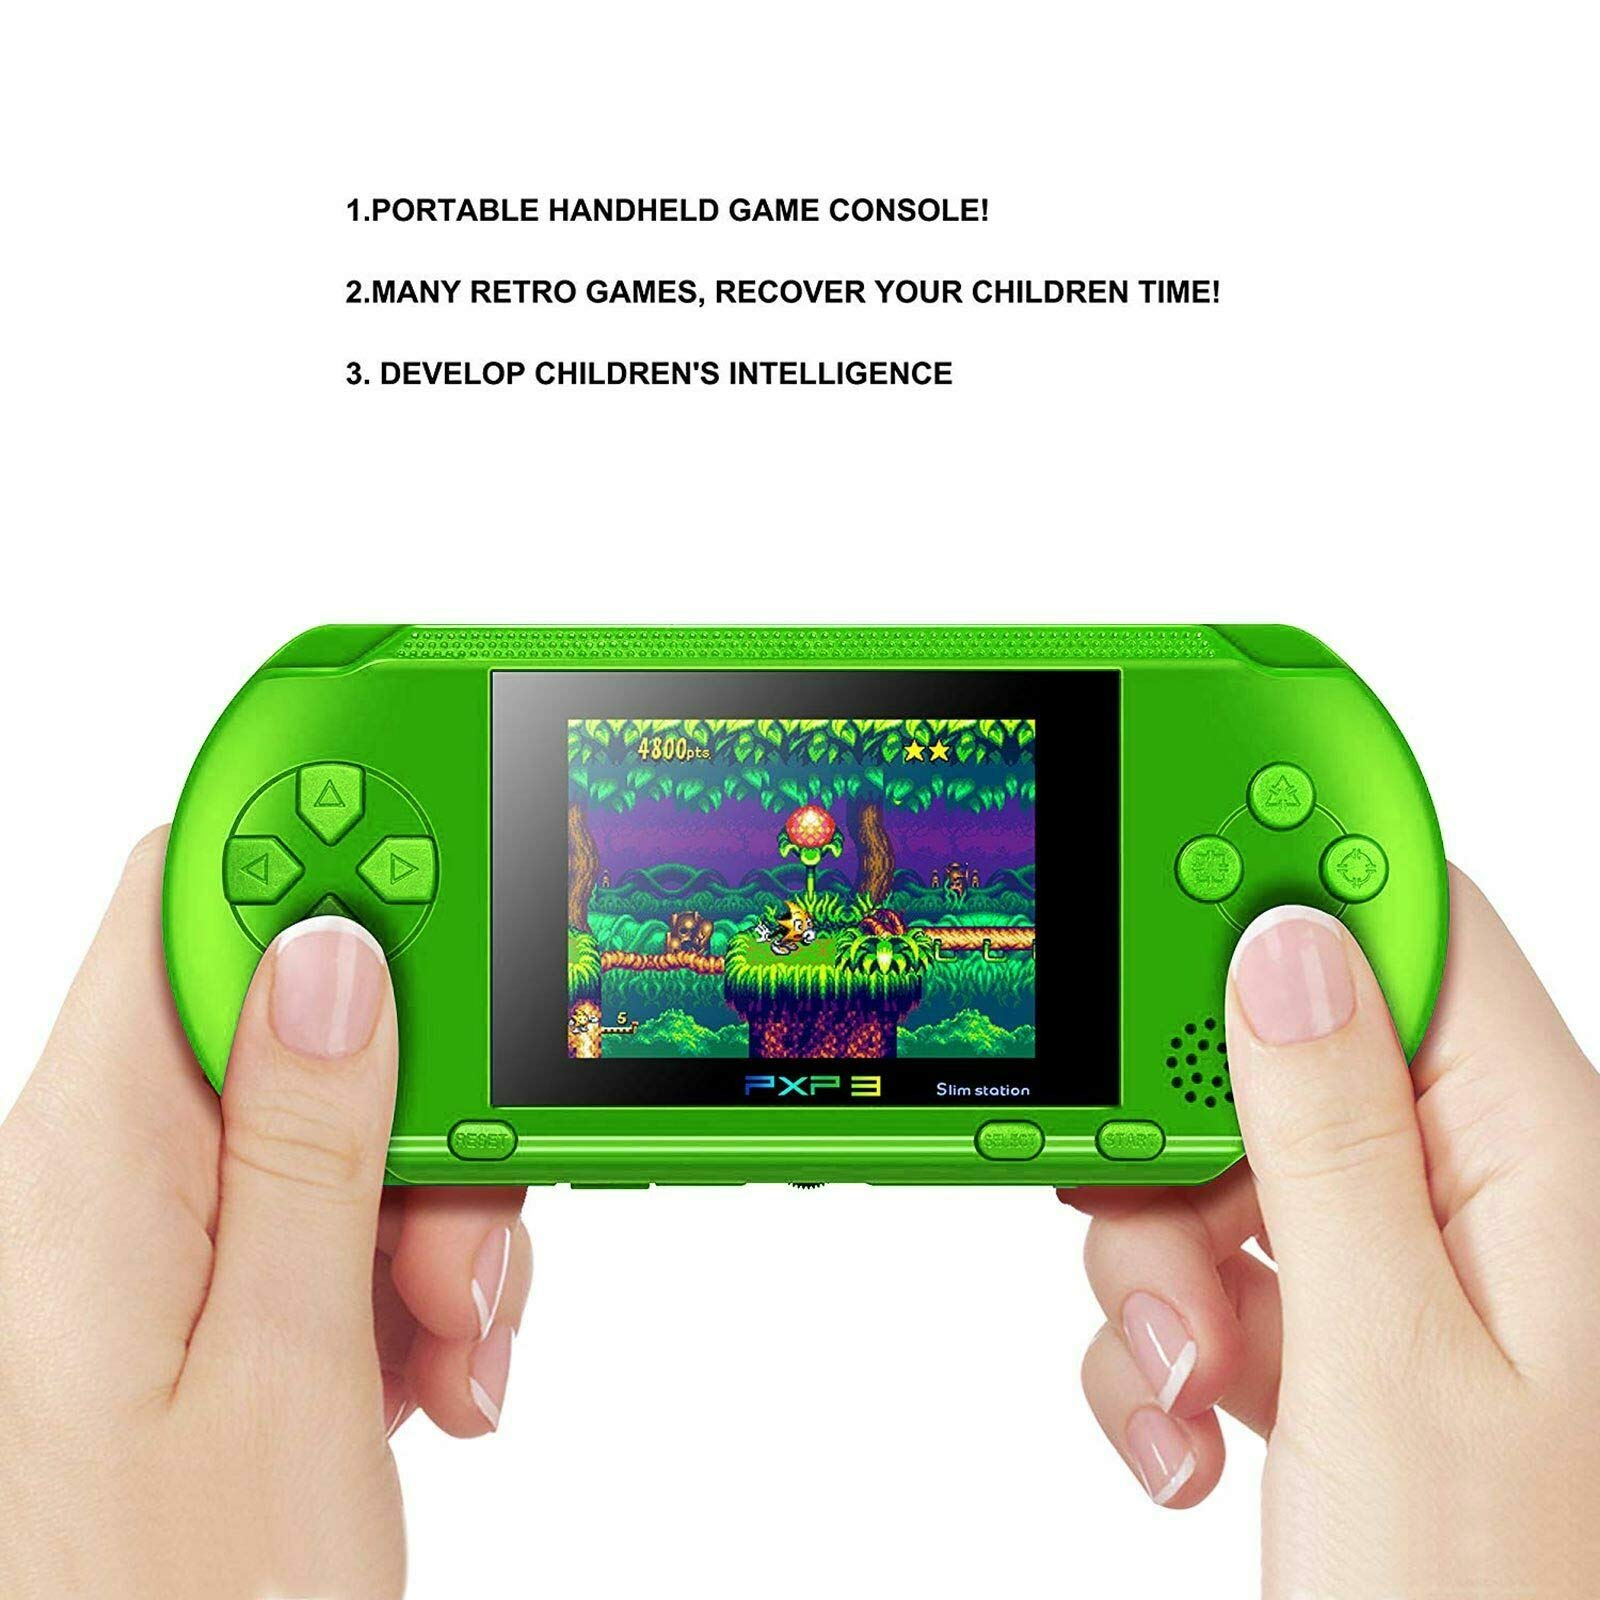 Ocamo Retro Game Console, AV Output PXP3 Portable Handheld Console Built-in Video Game Gaming Console Player Black by Ocamo (Image #5)